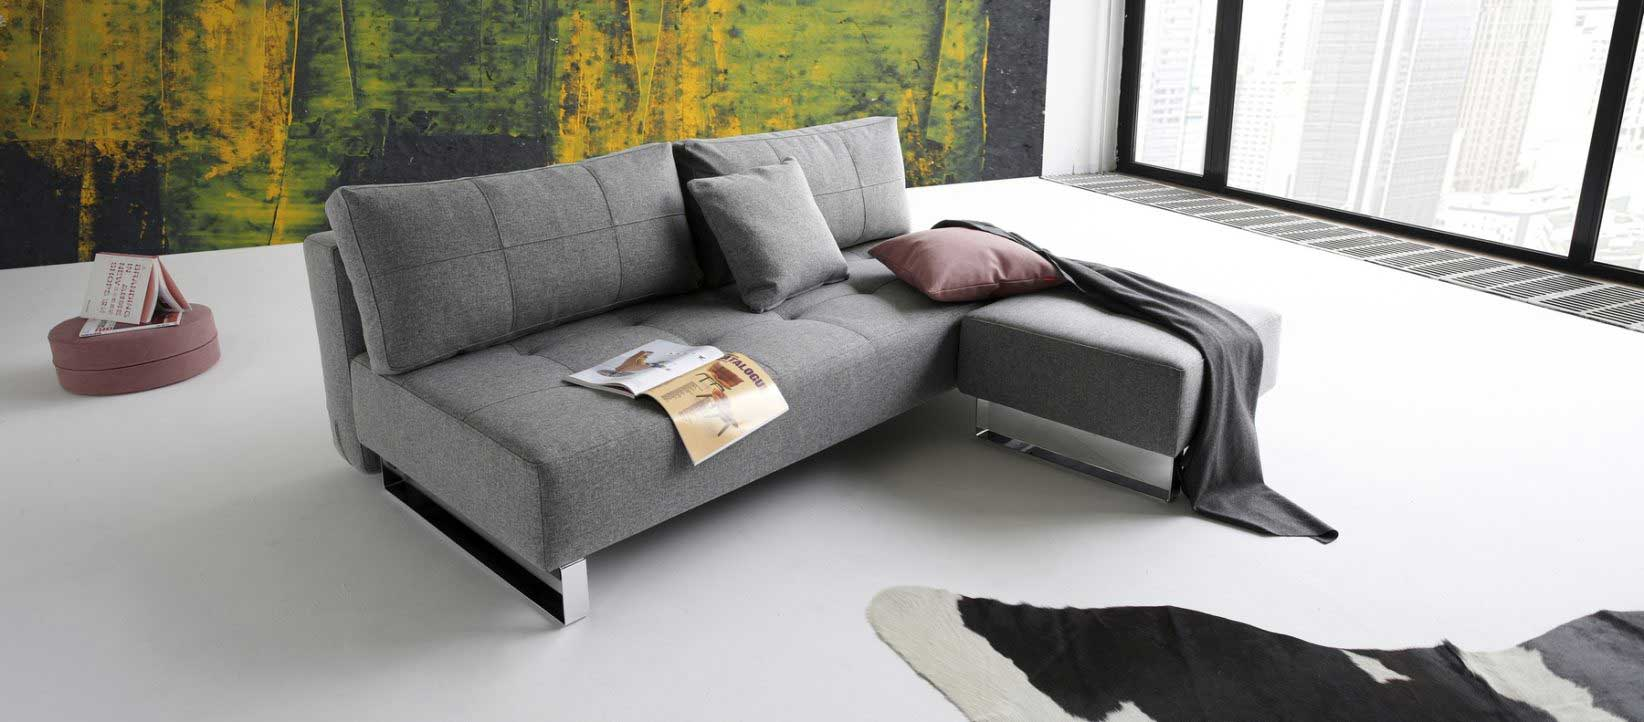 SUPREMAX_DELUXE_EXCESS_LOUNGER_SOFA_BED